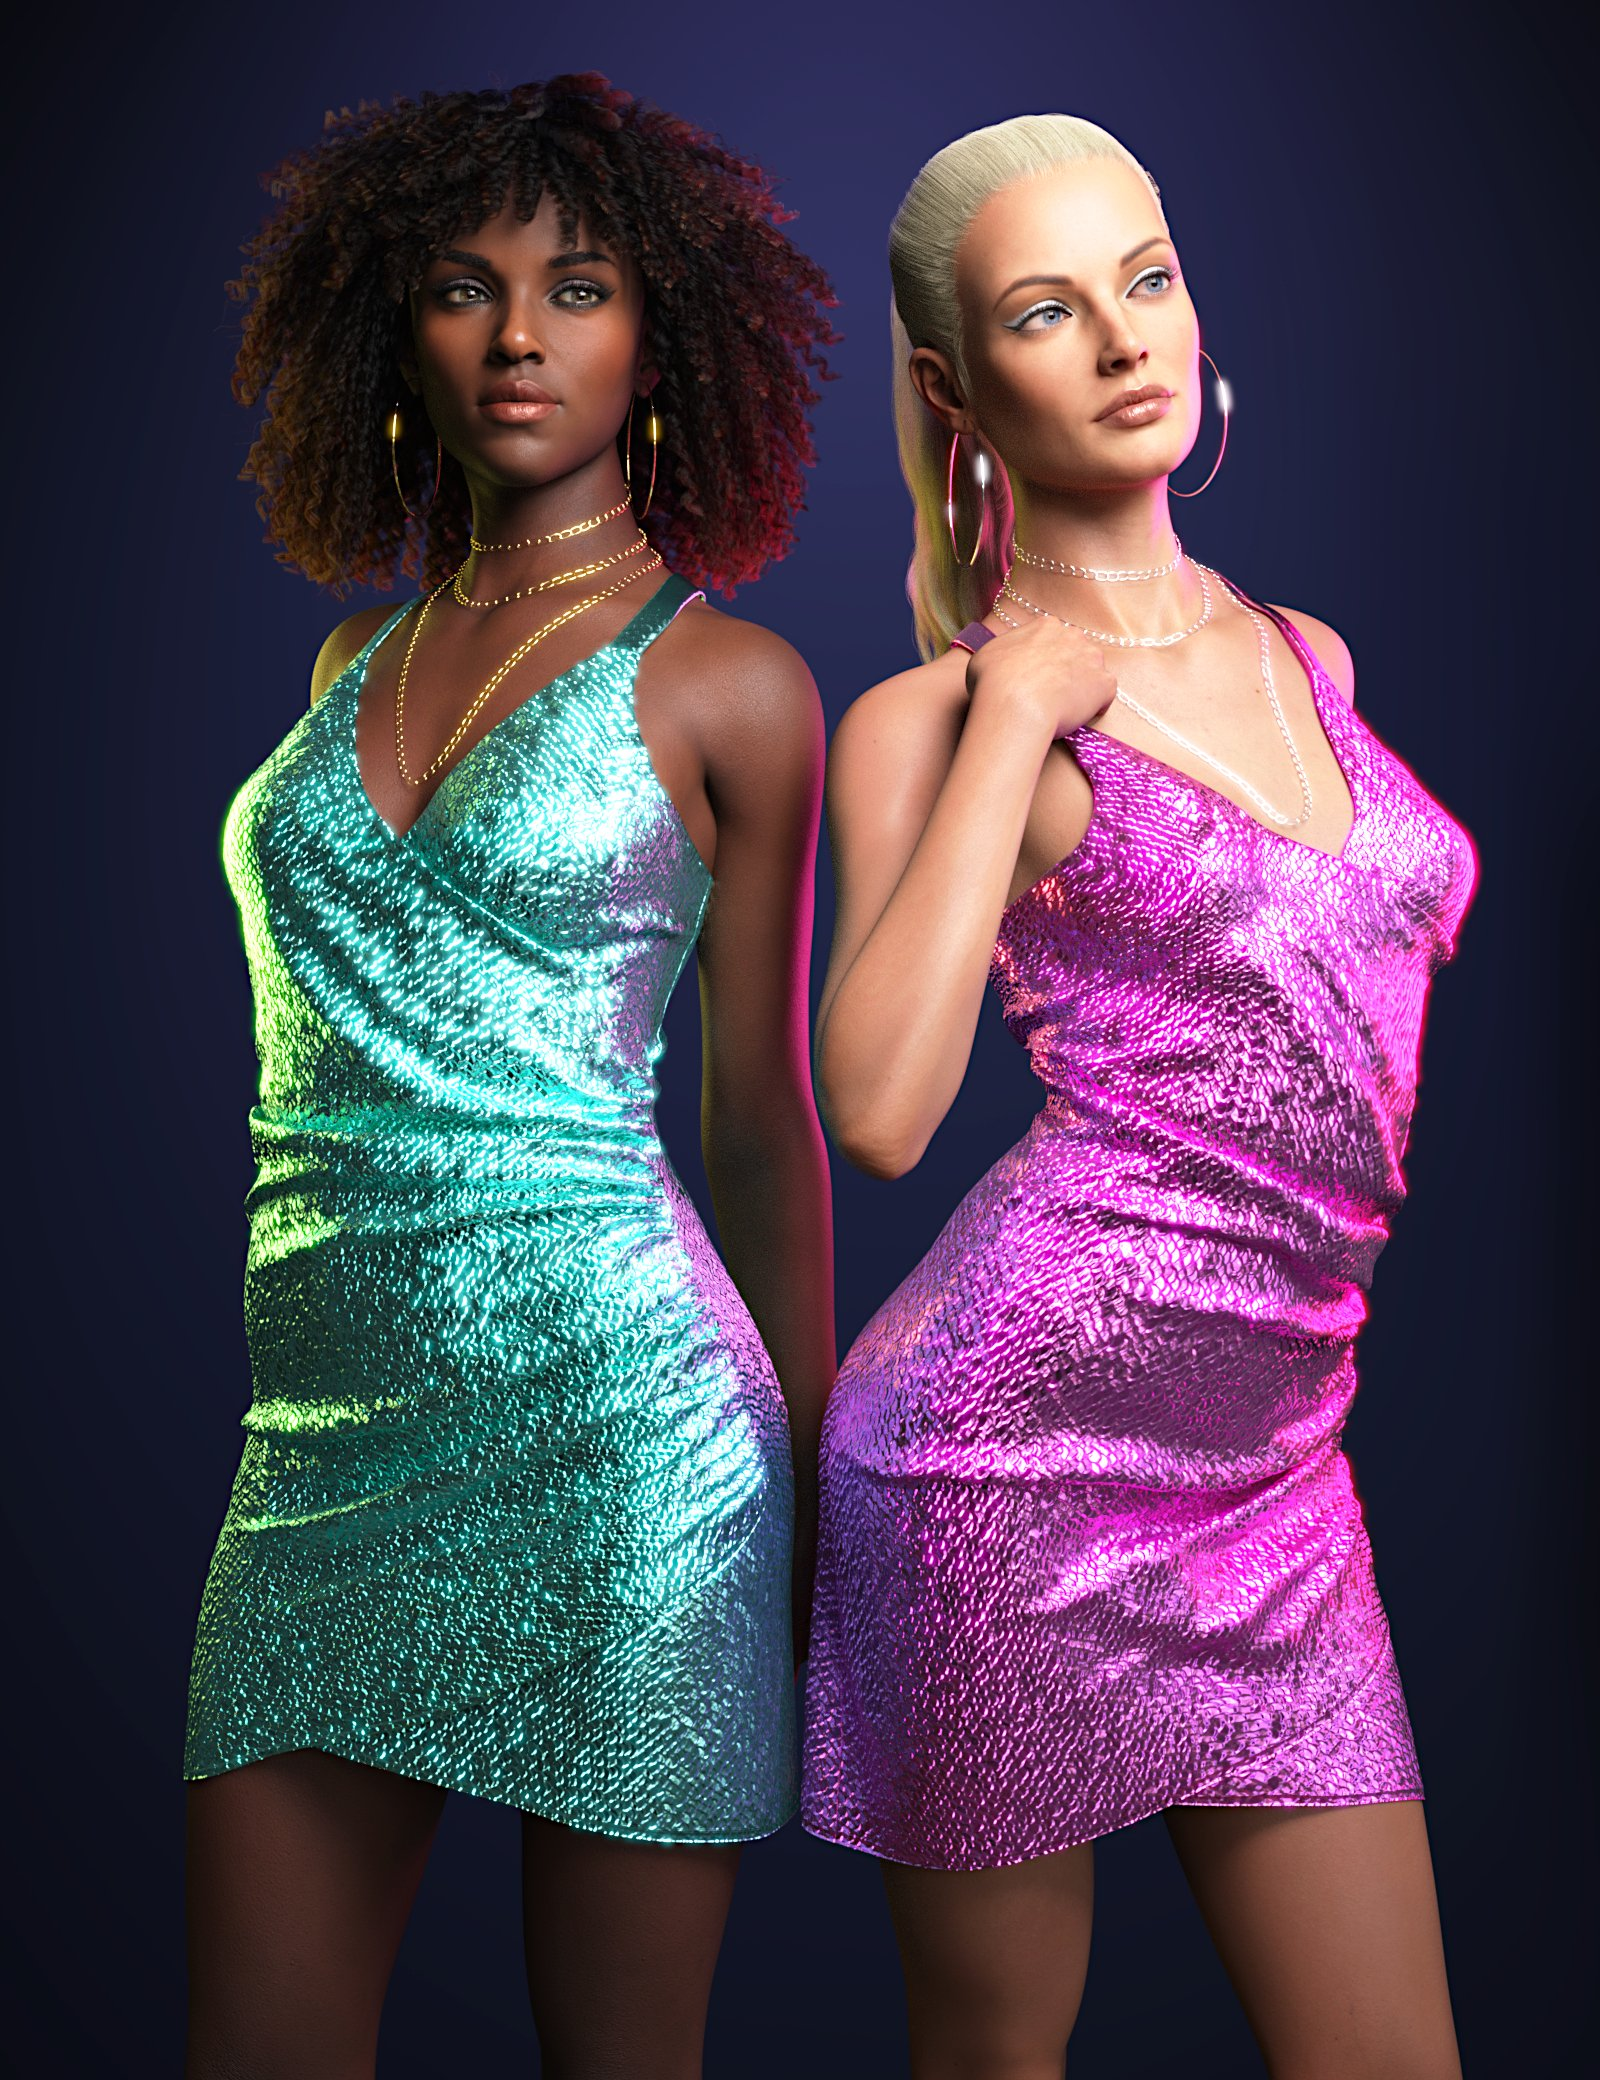 dForce Sparkling Party Dress for Genesis 8 and 8.1 Females by: Toyen, 3D Models by Daz 3D